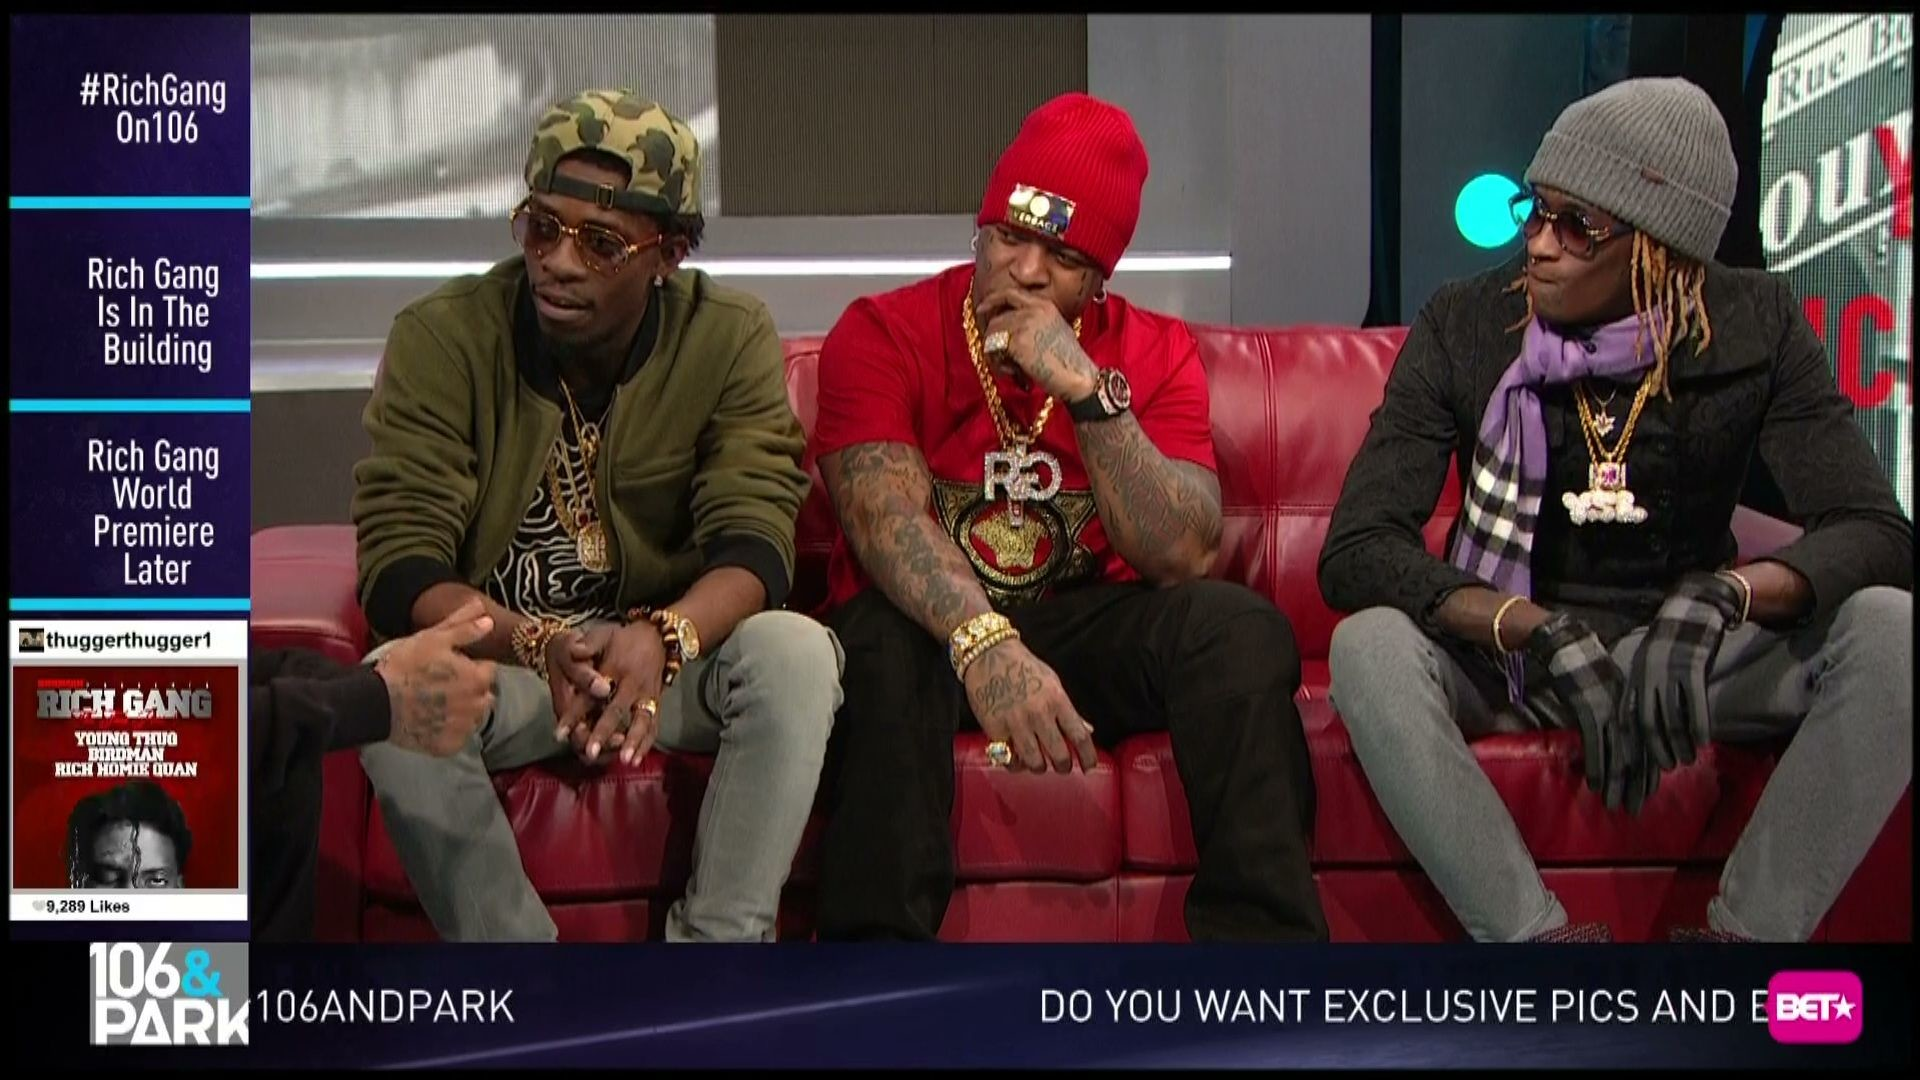 Rich Gang on Biggest Boss Moves, Upcoming Tour | 106 & Park | Season 2014